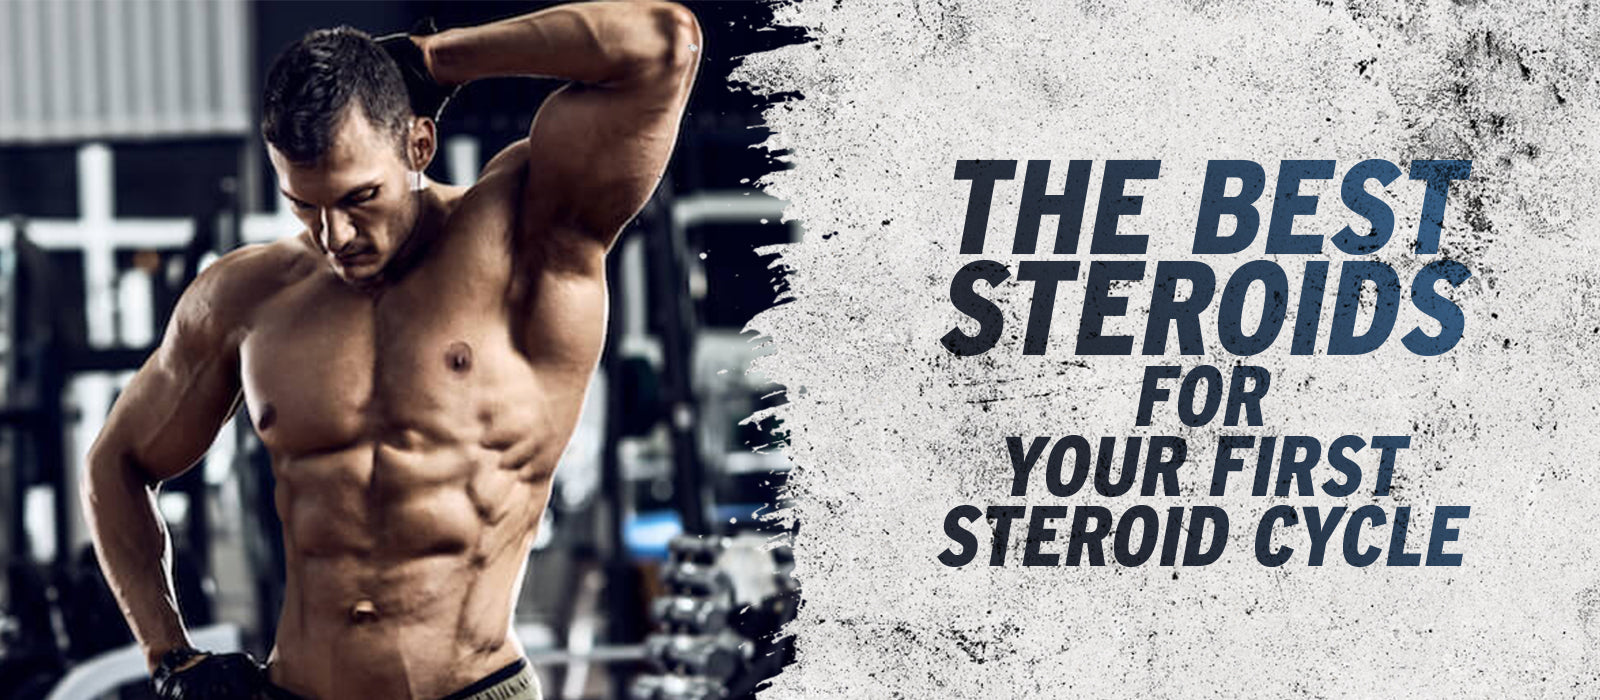 The Best Steroids For Your First Steroid Cycle